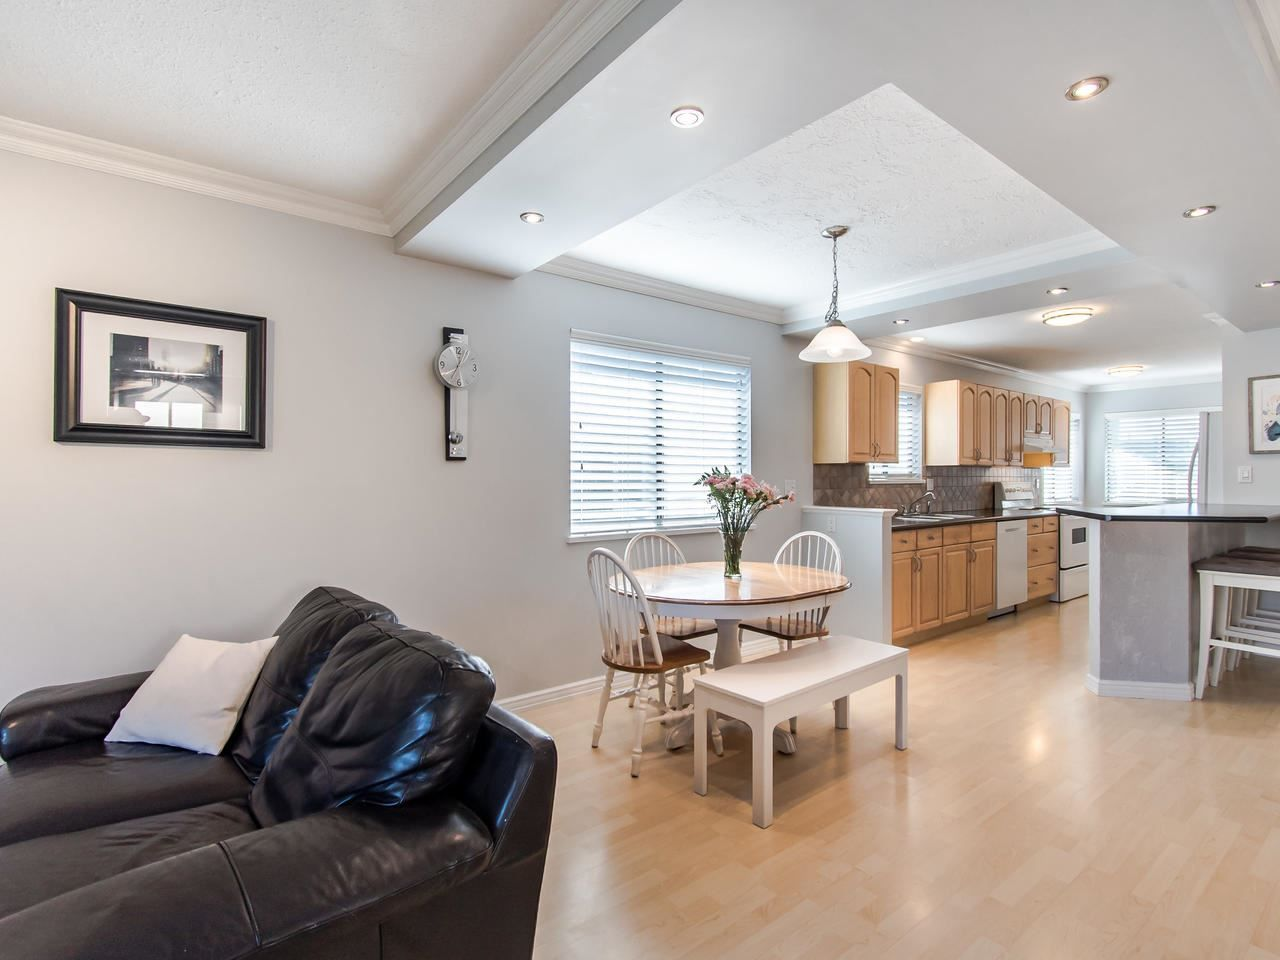 """Photo 4: Photos: 2508 WILDING Crescent in Langley: Willoughby Heights House for sale in """"LANGLEY MEADOWS"""" : MLS®# R2437642"""